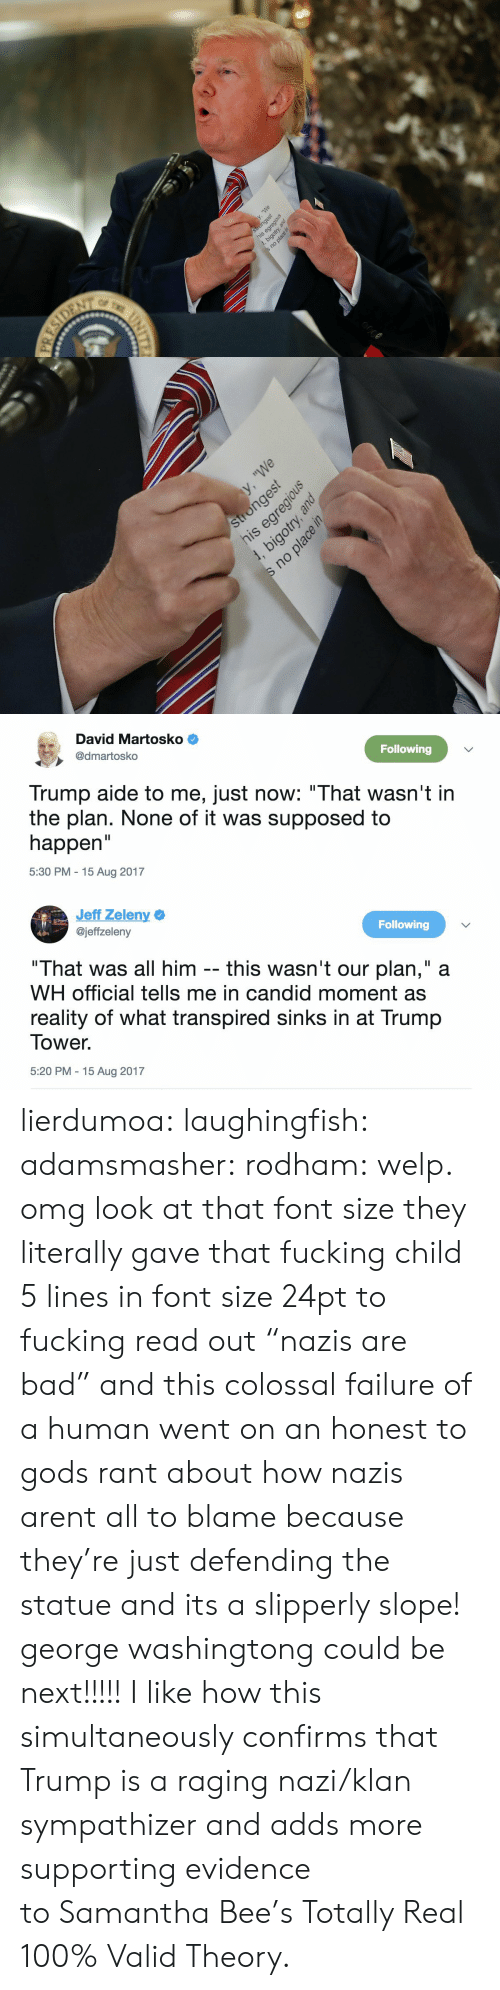 """Anaconda, Bad, and Fucking: pue Ku   u,a e   David Martosko  @dmartosko  Following  Trump aide to me, just now: """"That wasn't in  the plan. None of it was supposed to  happen  5:30 PM - 15 Aug 2017   Jeff Zeleny  @jeffzeleny  Following  """"That was all him -- this wasn't our plan,"""" a  WH official tells me in candid moment as  reality of what transpired sinks in at Trump  Tower.  5:20 PM 15 Aug 2017 lierdumoa:  laughingfish:  adamsmasher:  rodham: welp.  omg look at that font size  they literally gave that fucking child 5 lines in font size 24pt to fucking read out""""nazis are bad"""" and this colossal failure of a human went on an honest to gods rant about how nazis arent all to blame because they're just defending the statue and its a slipperly slope! george washingtongcould be next!!!!!  I like how this simultaneously confirmsthat Trump is a raging nazi/klan sympathizer and adds more supporting evidence toSamantha Bee's Totally Real 100% Valid Theory."""